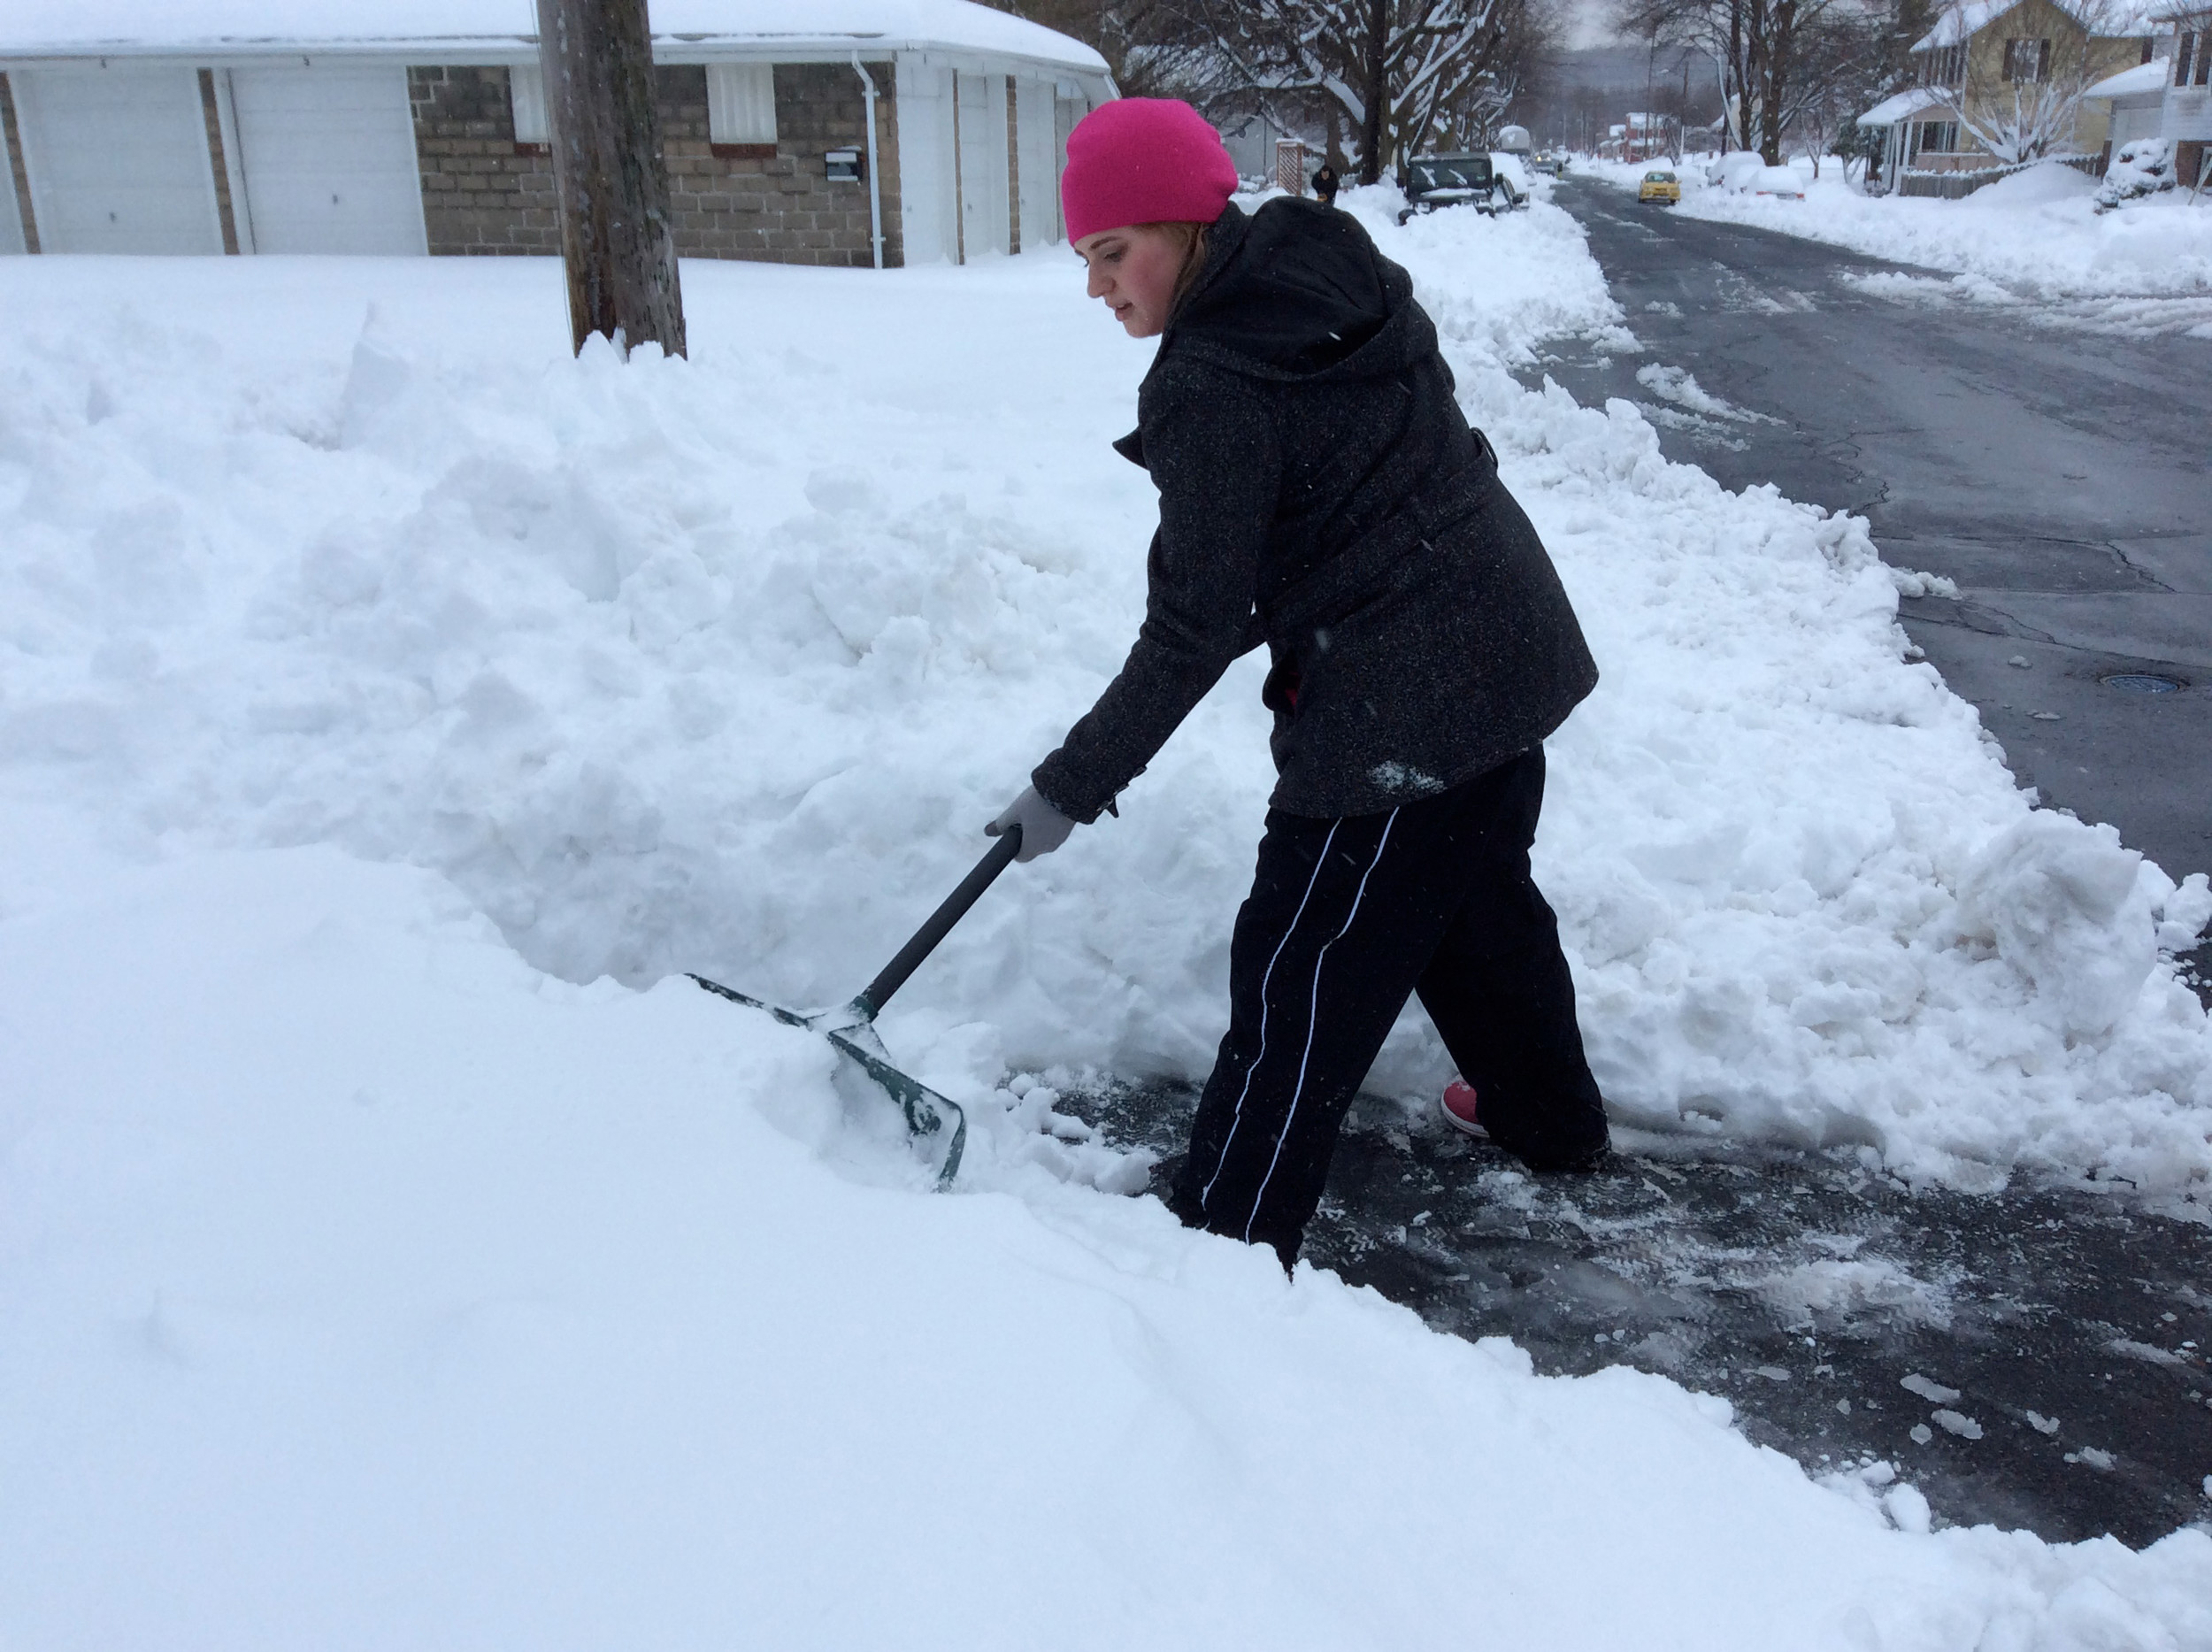 Clearing the snow in Middletown.